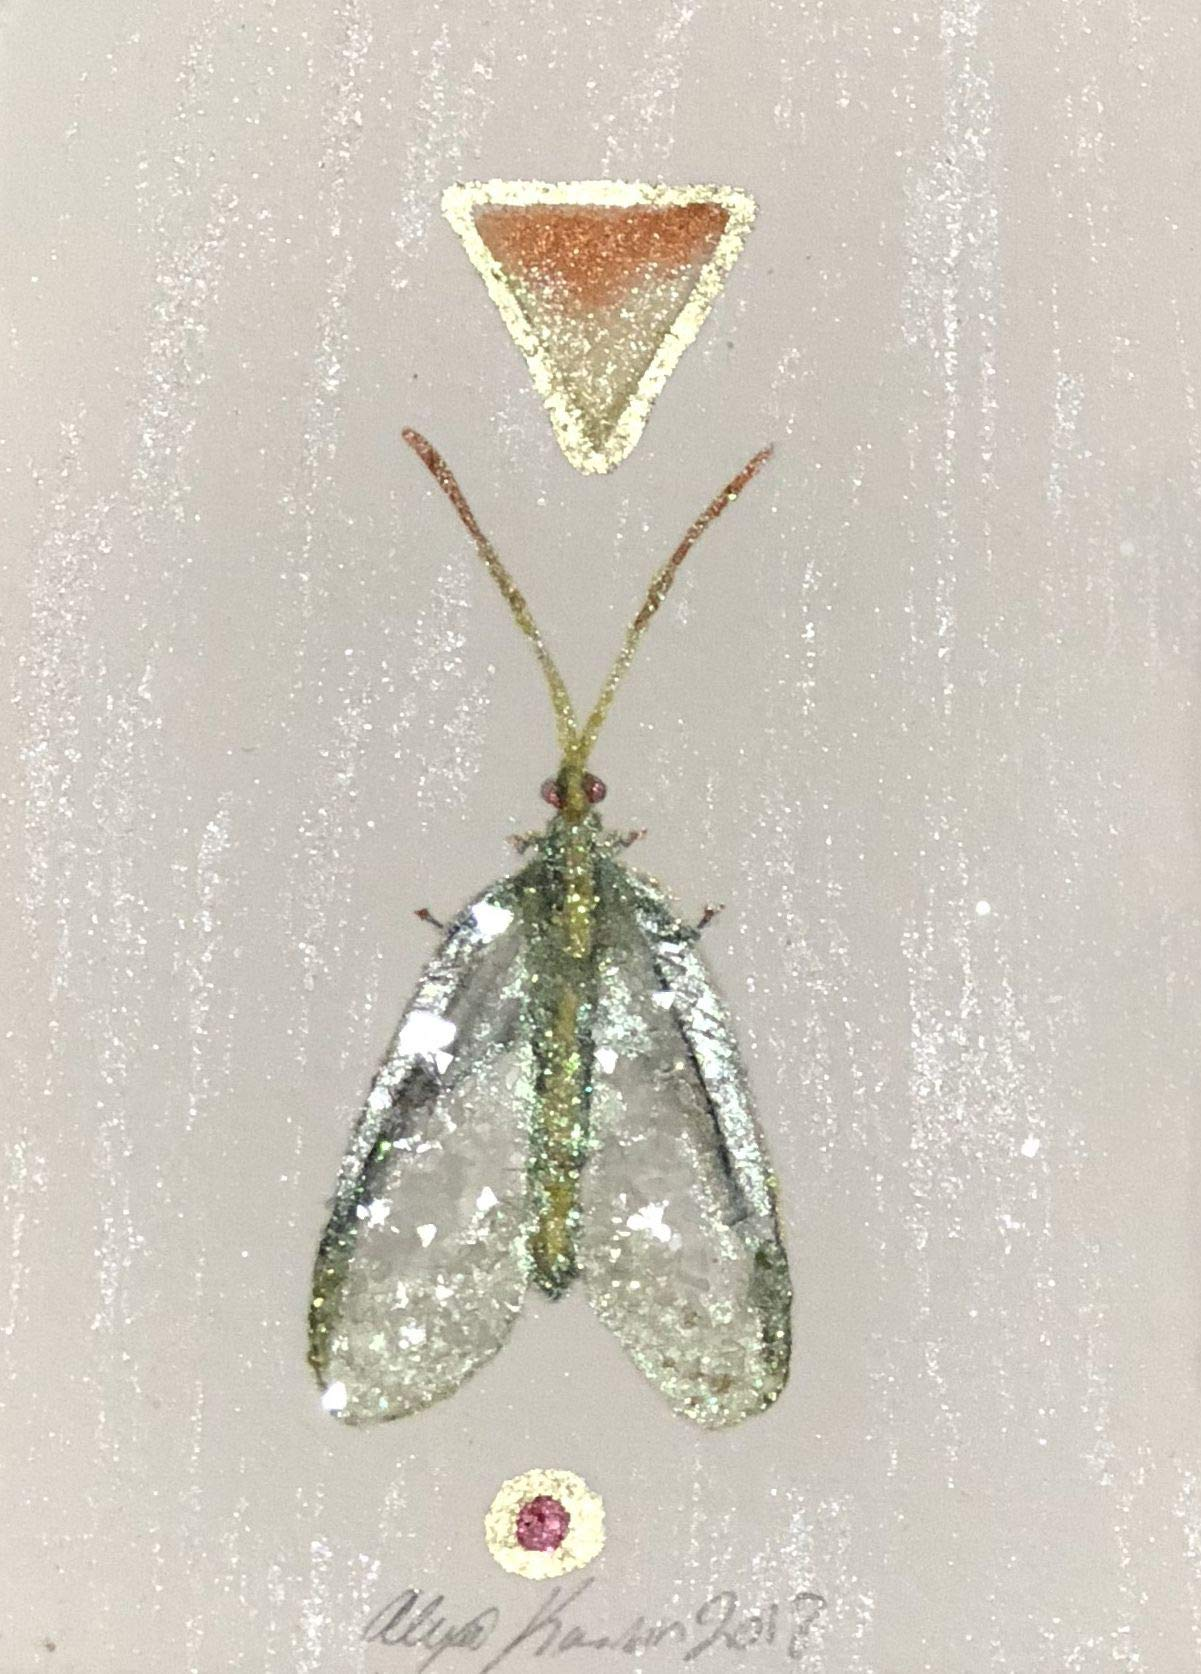 Lacewing by